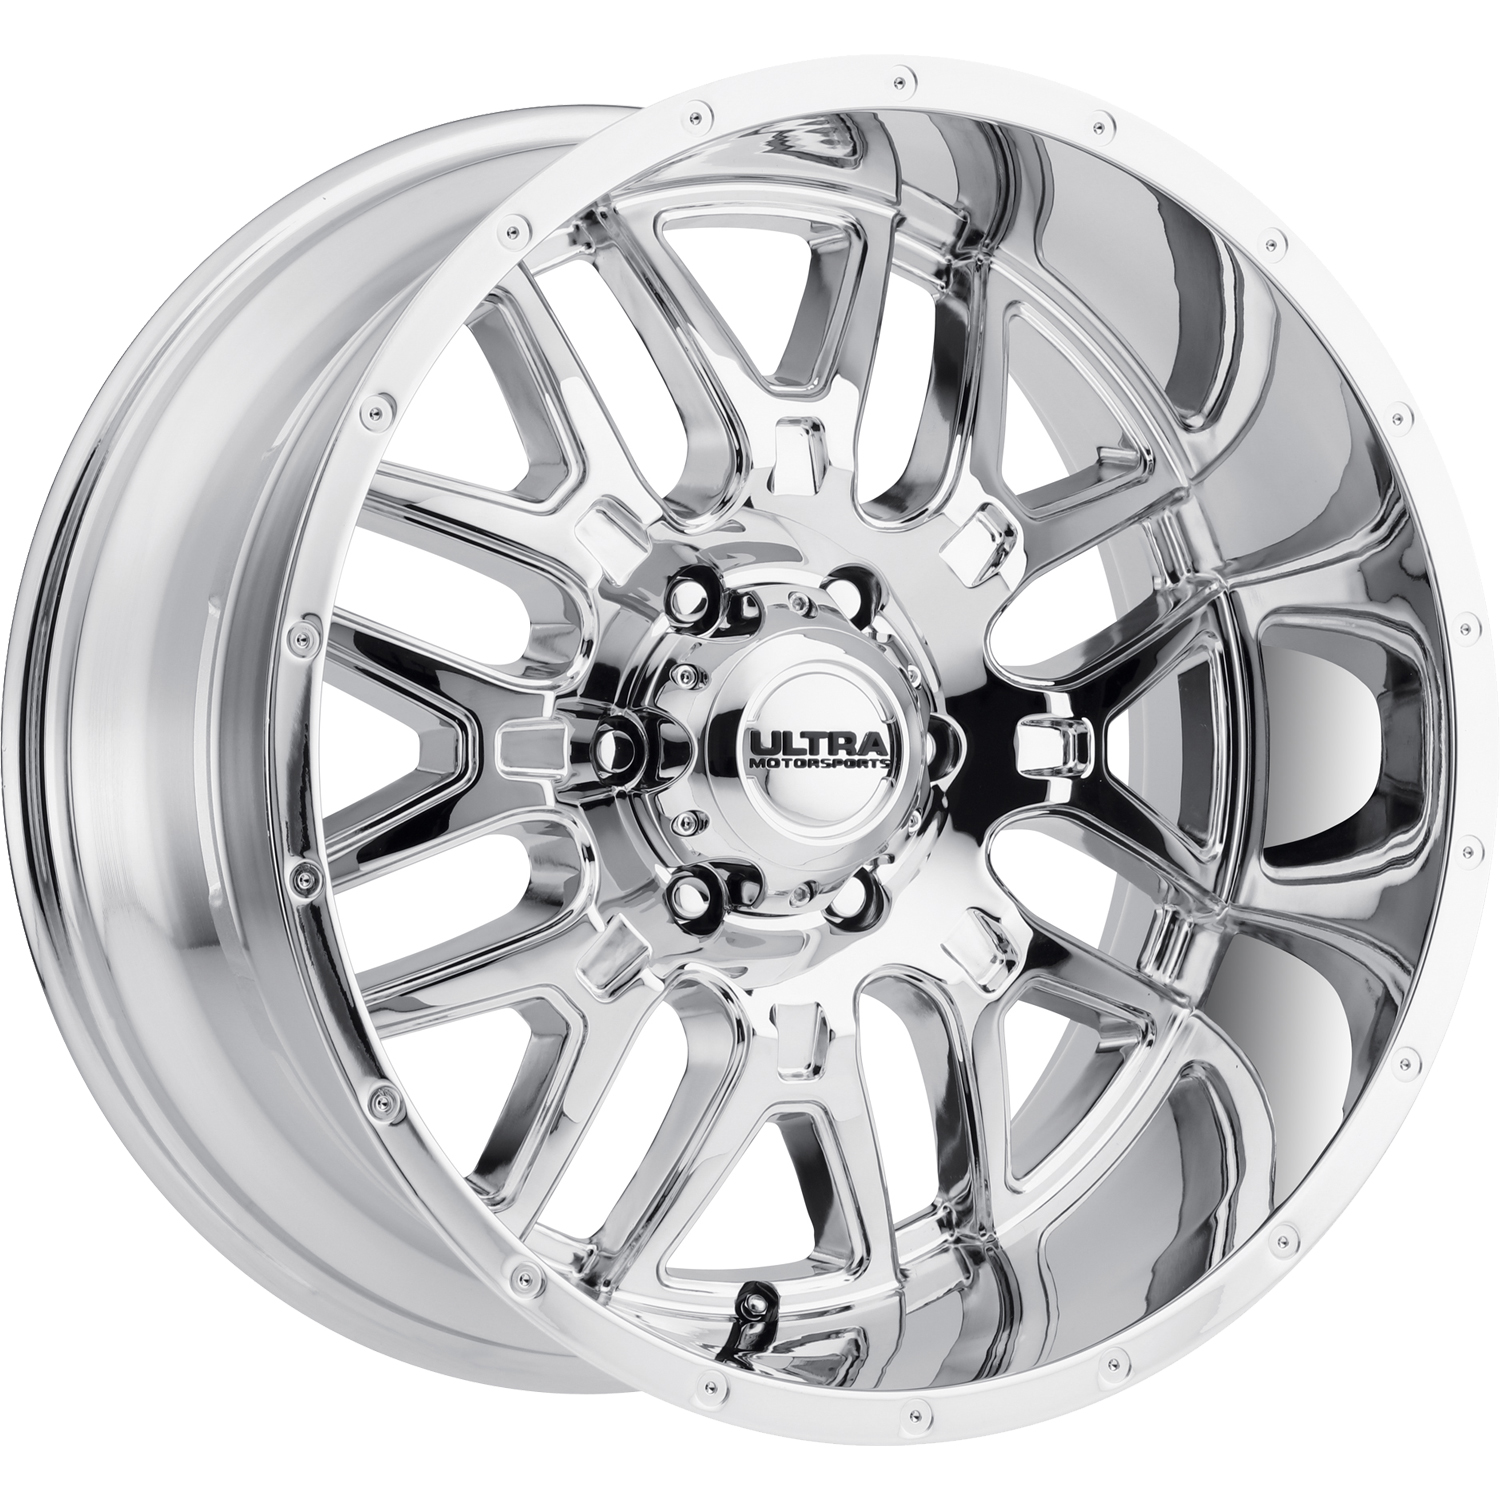 Ultra Hunter 17x9 +10mm & 24x12  44mm | 203 7973C+10 & 203 2473C44